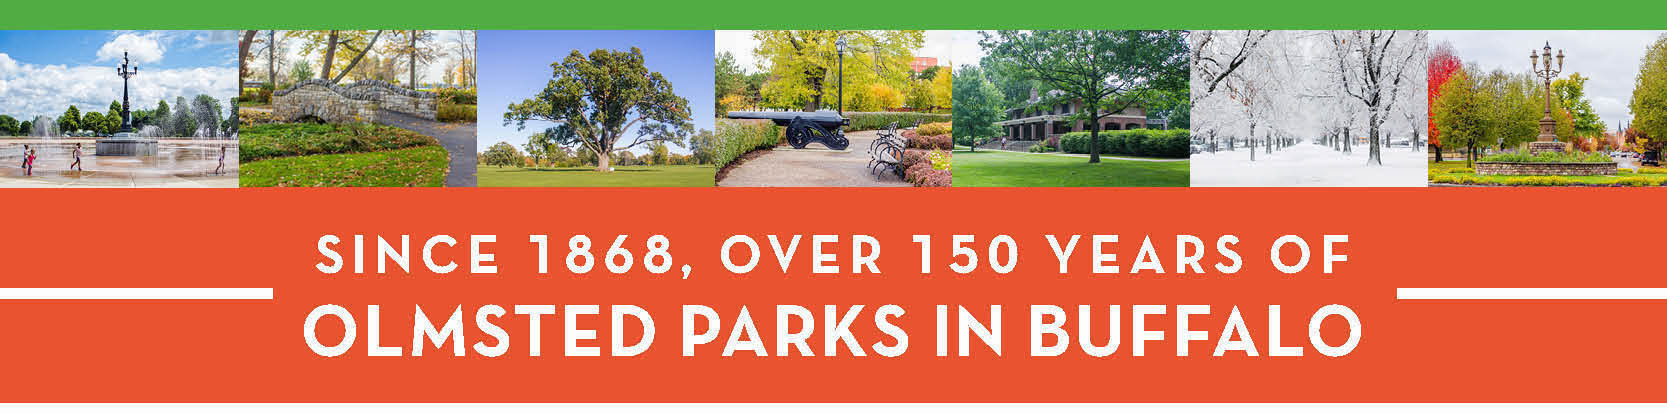 Since 1868, over 150 years of Olmsted Parks in Buffalo